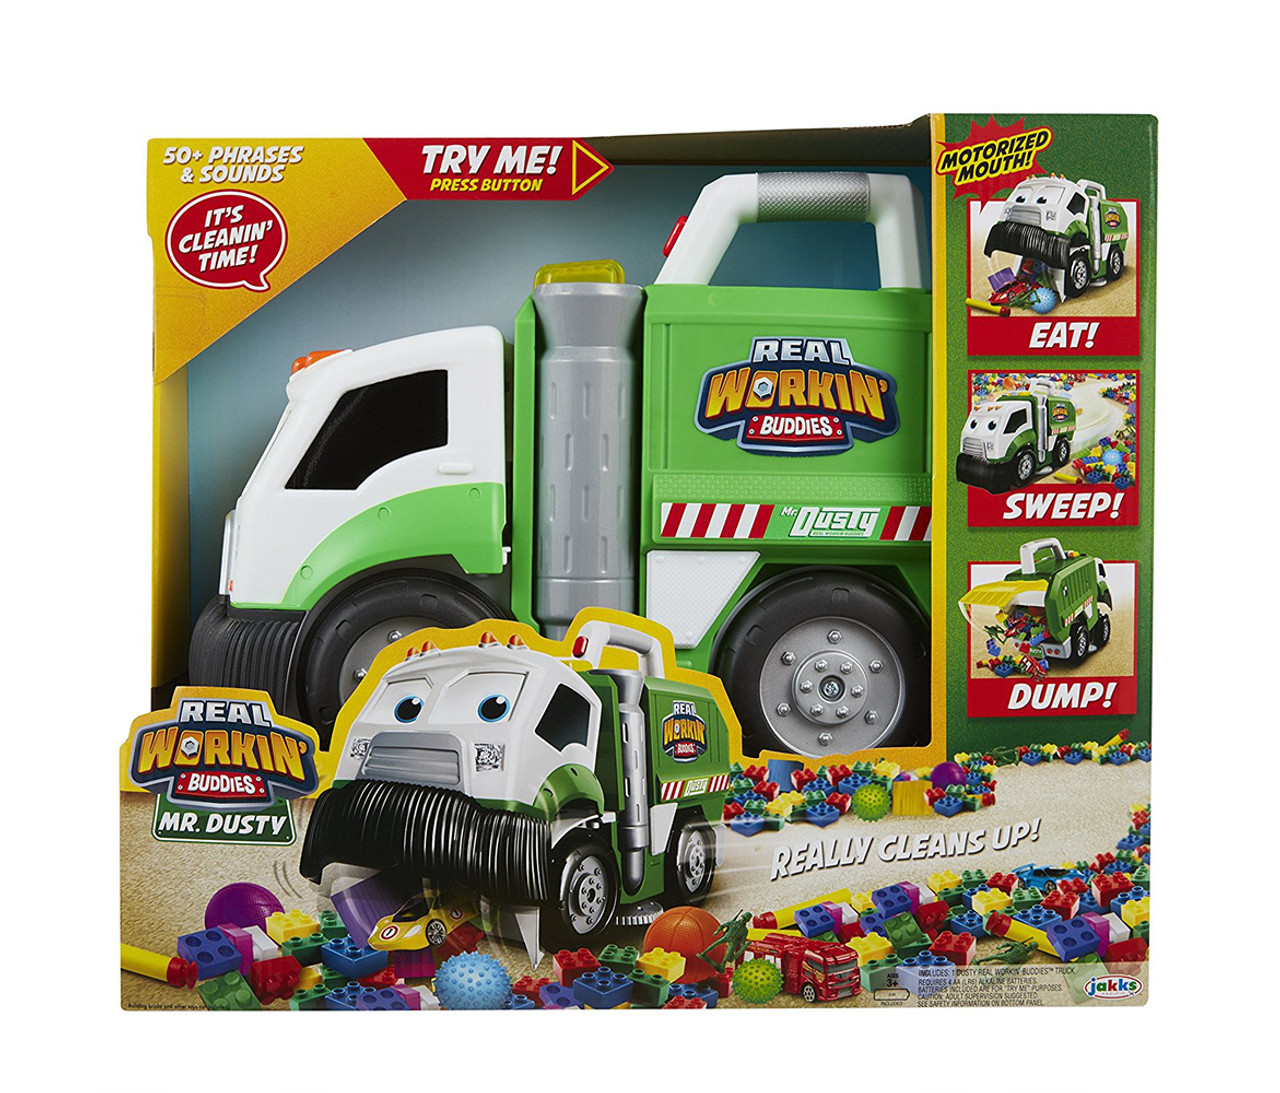 Real Workin Buddies Mr Dusty The Super Duper Toy Eating Garbage Truck Novelty Vehicles